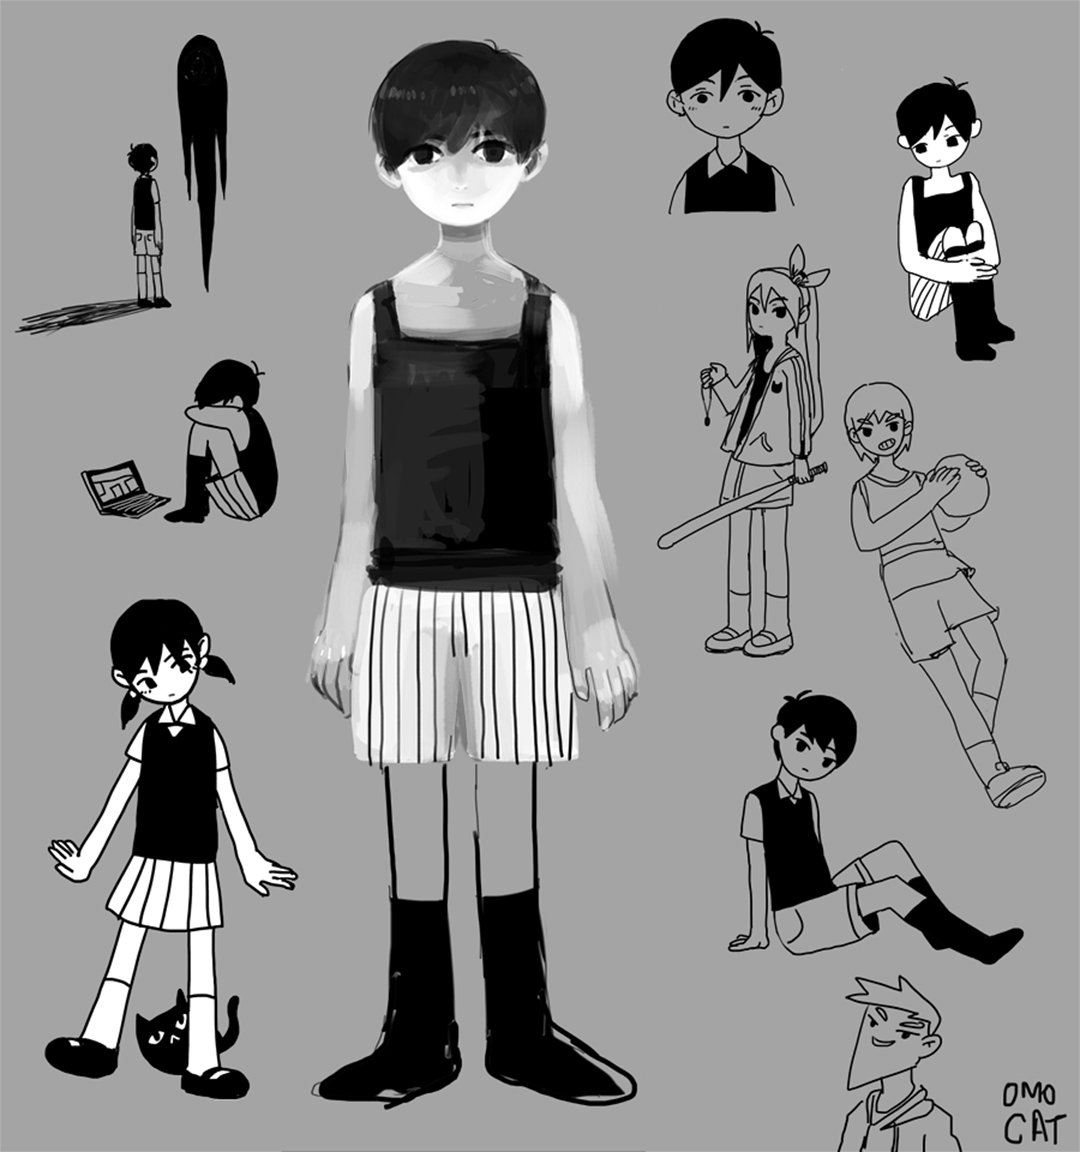 Omori On Twitter Old Character Doodles Bottom Right Hero Is Still My Favorite 2014